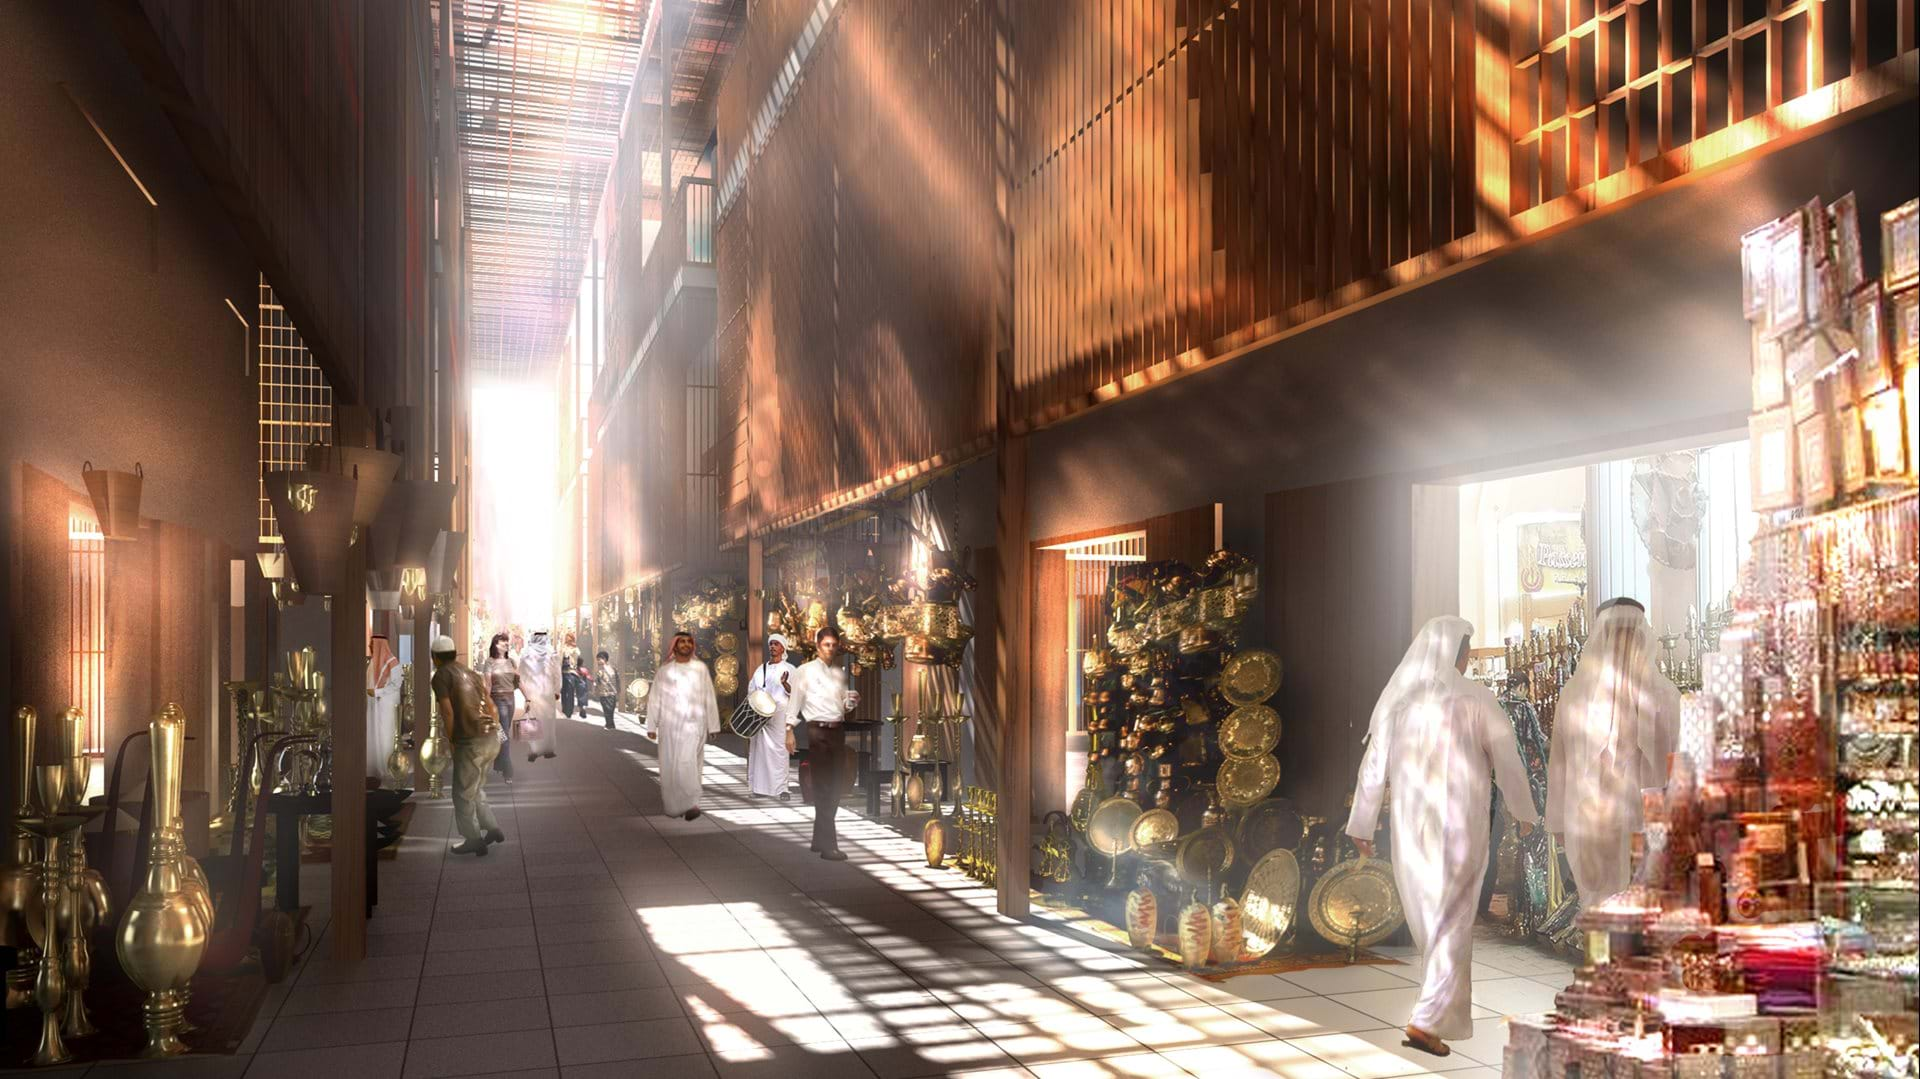 Abu Dhabi Central Market Foster Partners